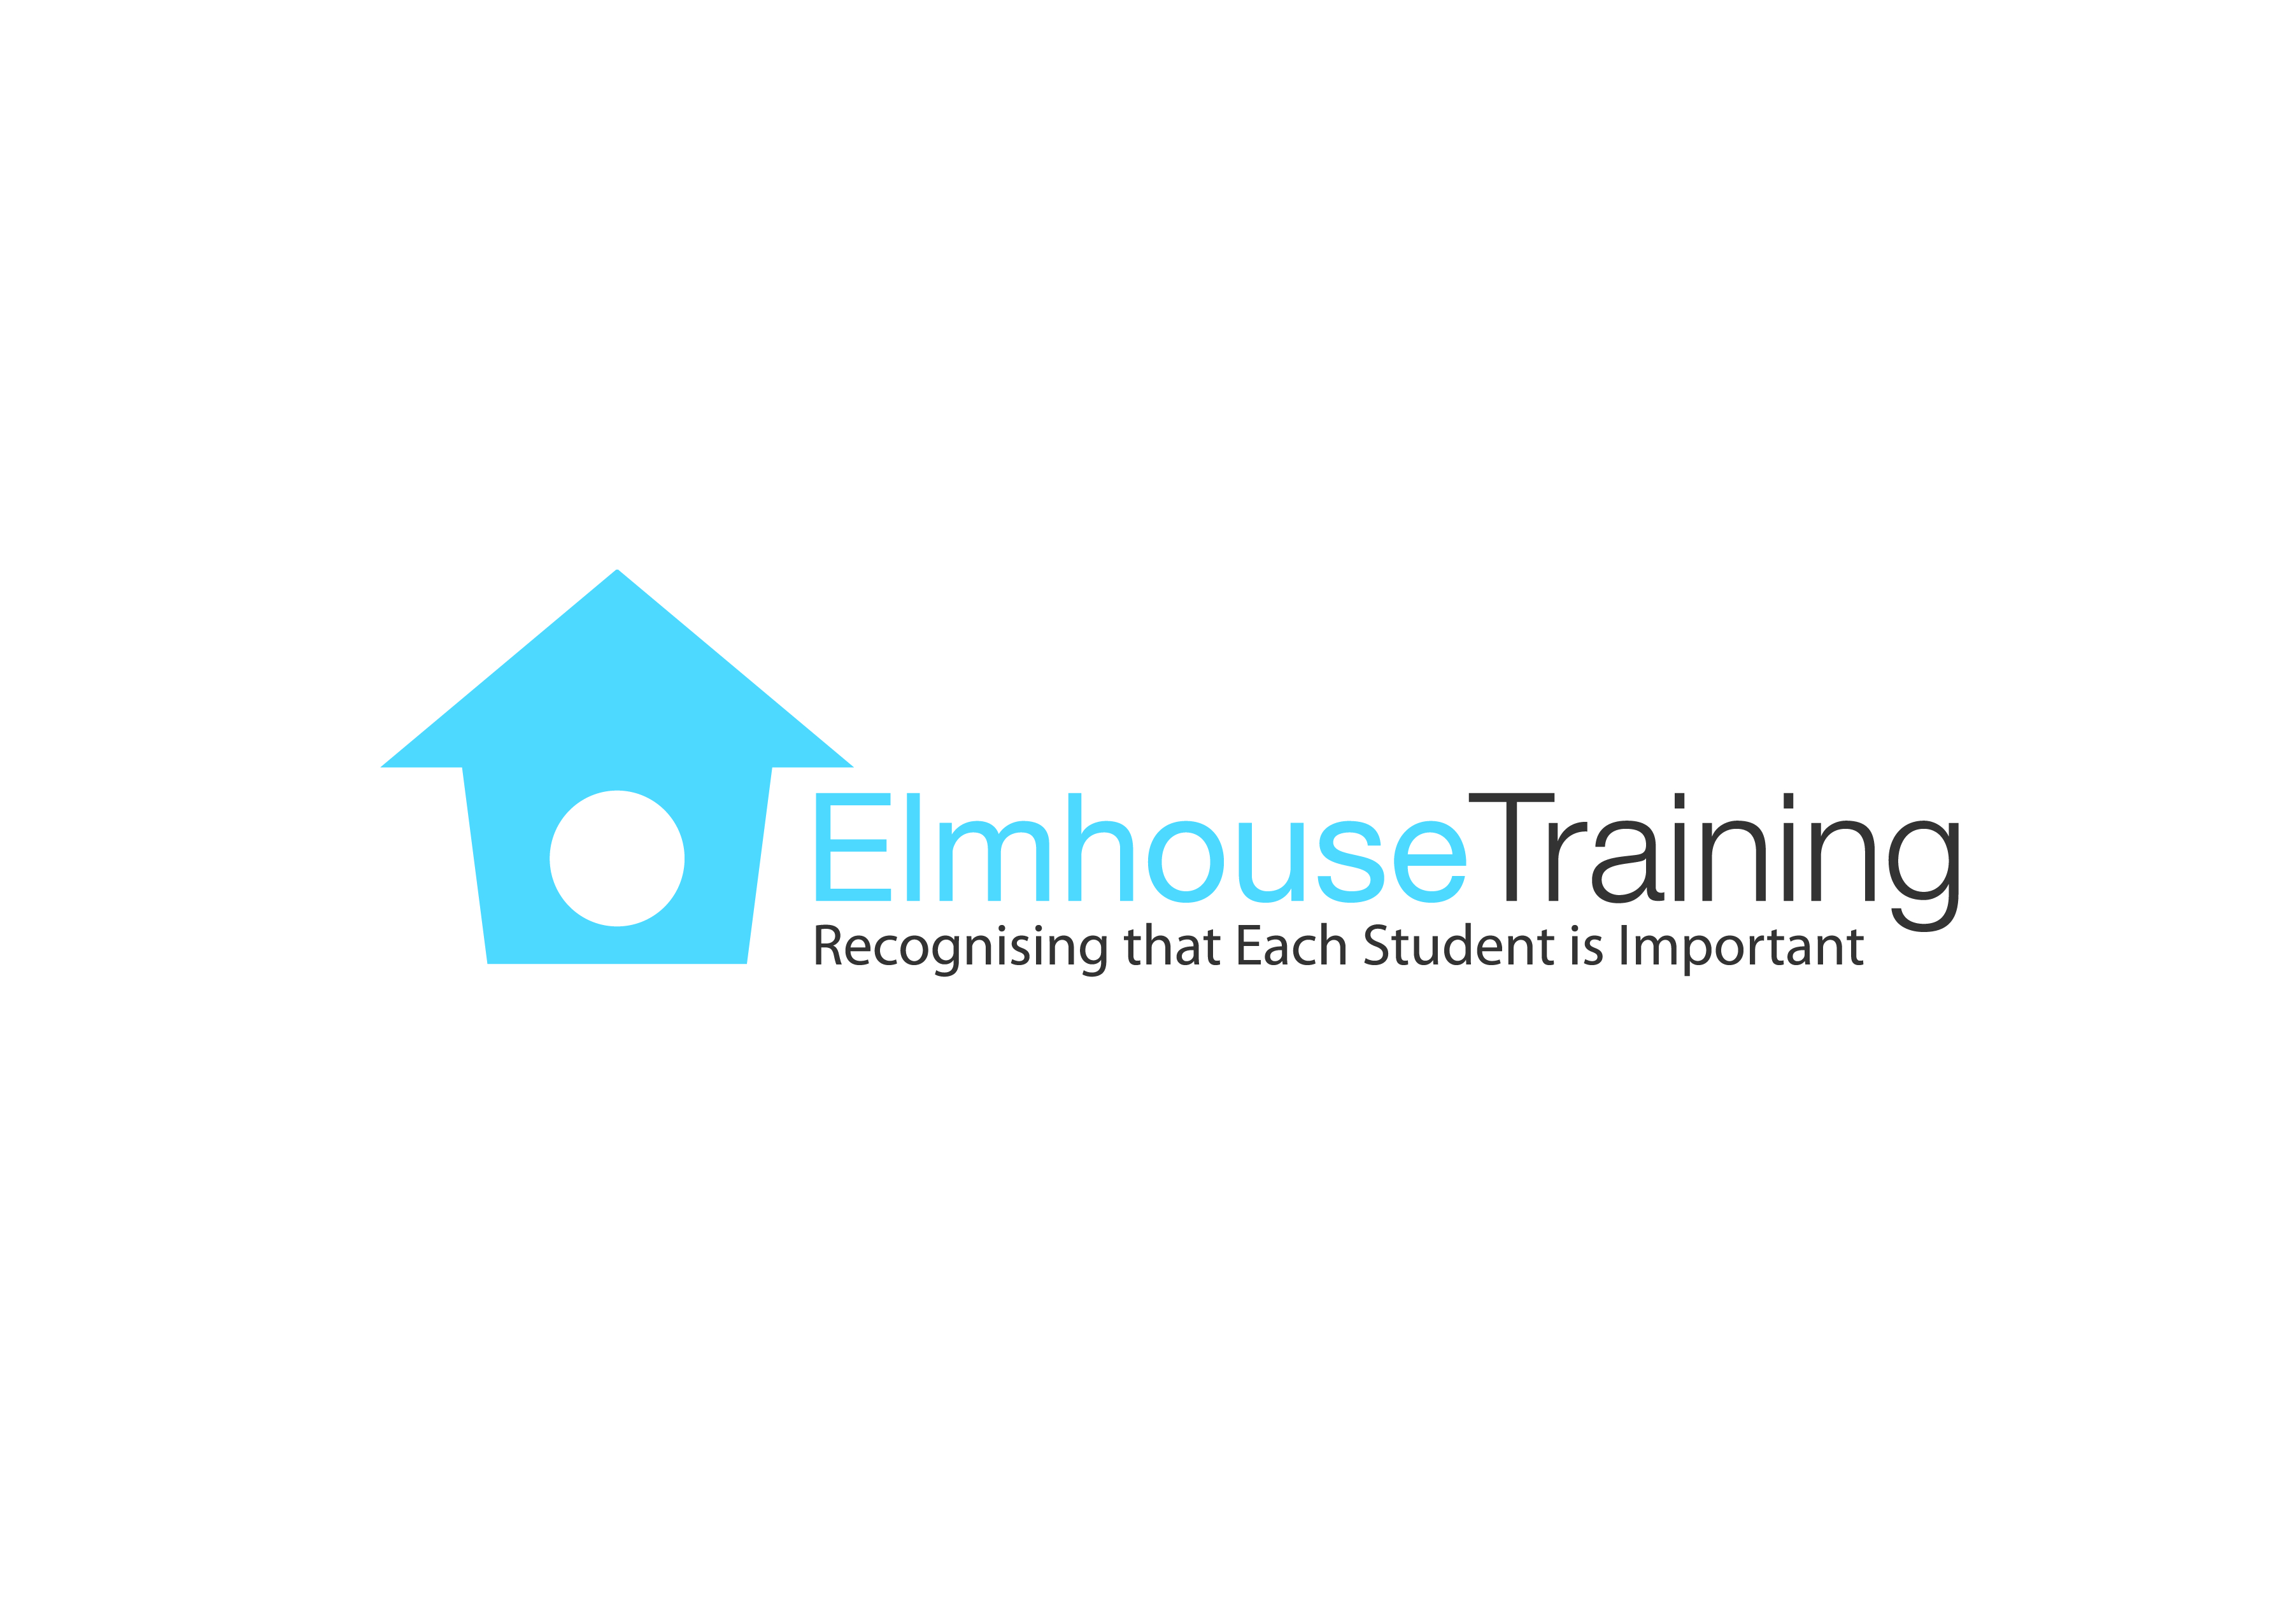 Elmhouse Training